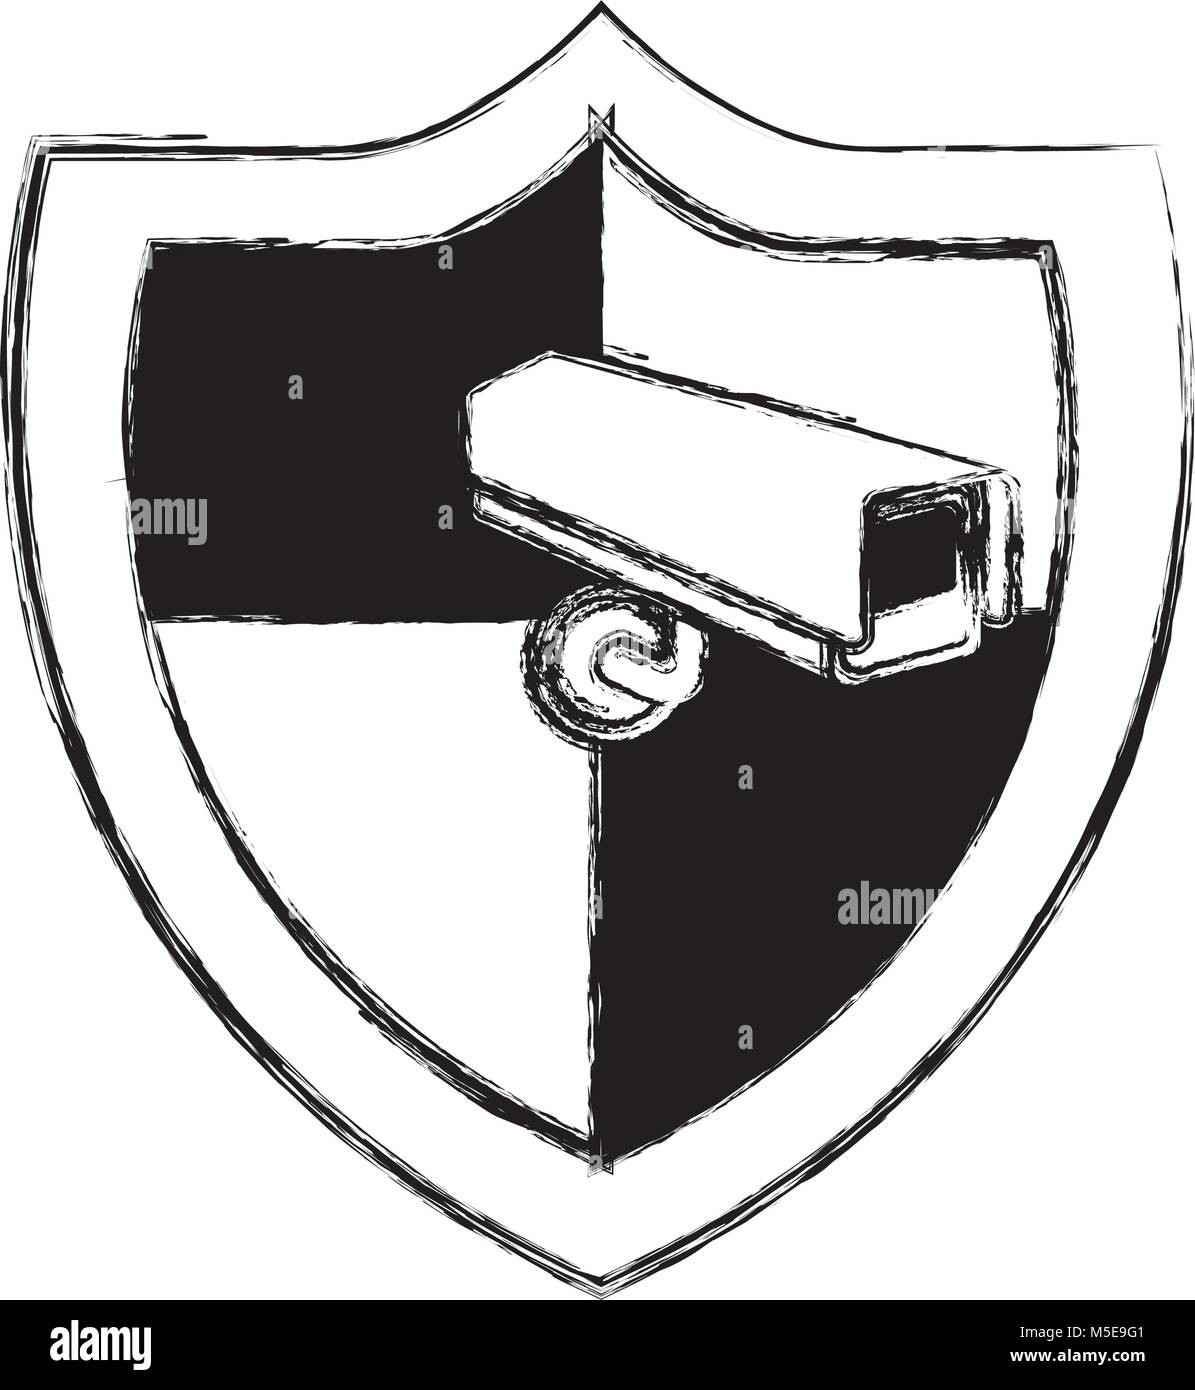 shield protection surveillance camera data system - Stock Image